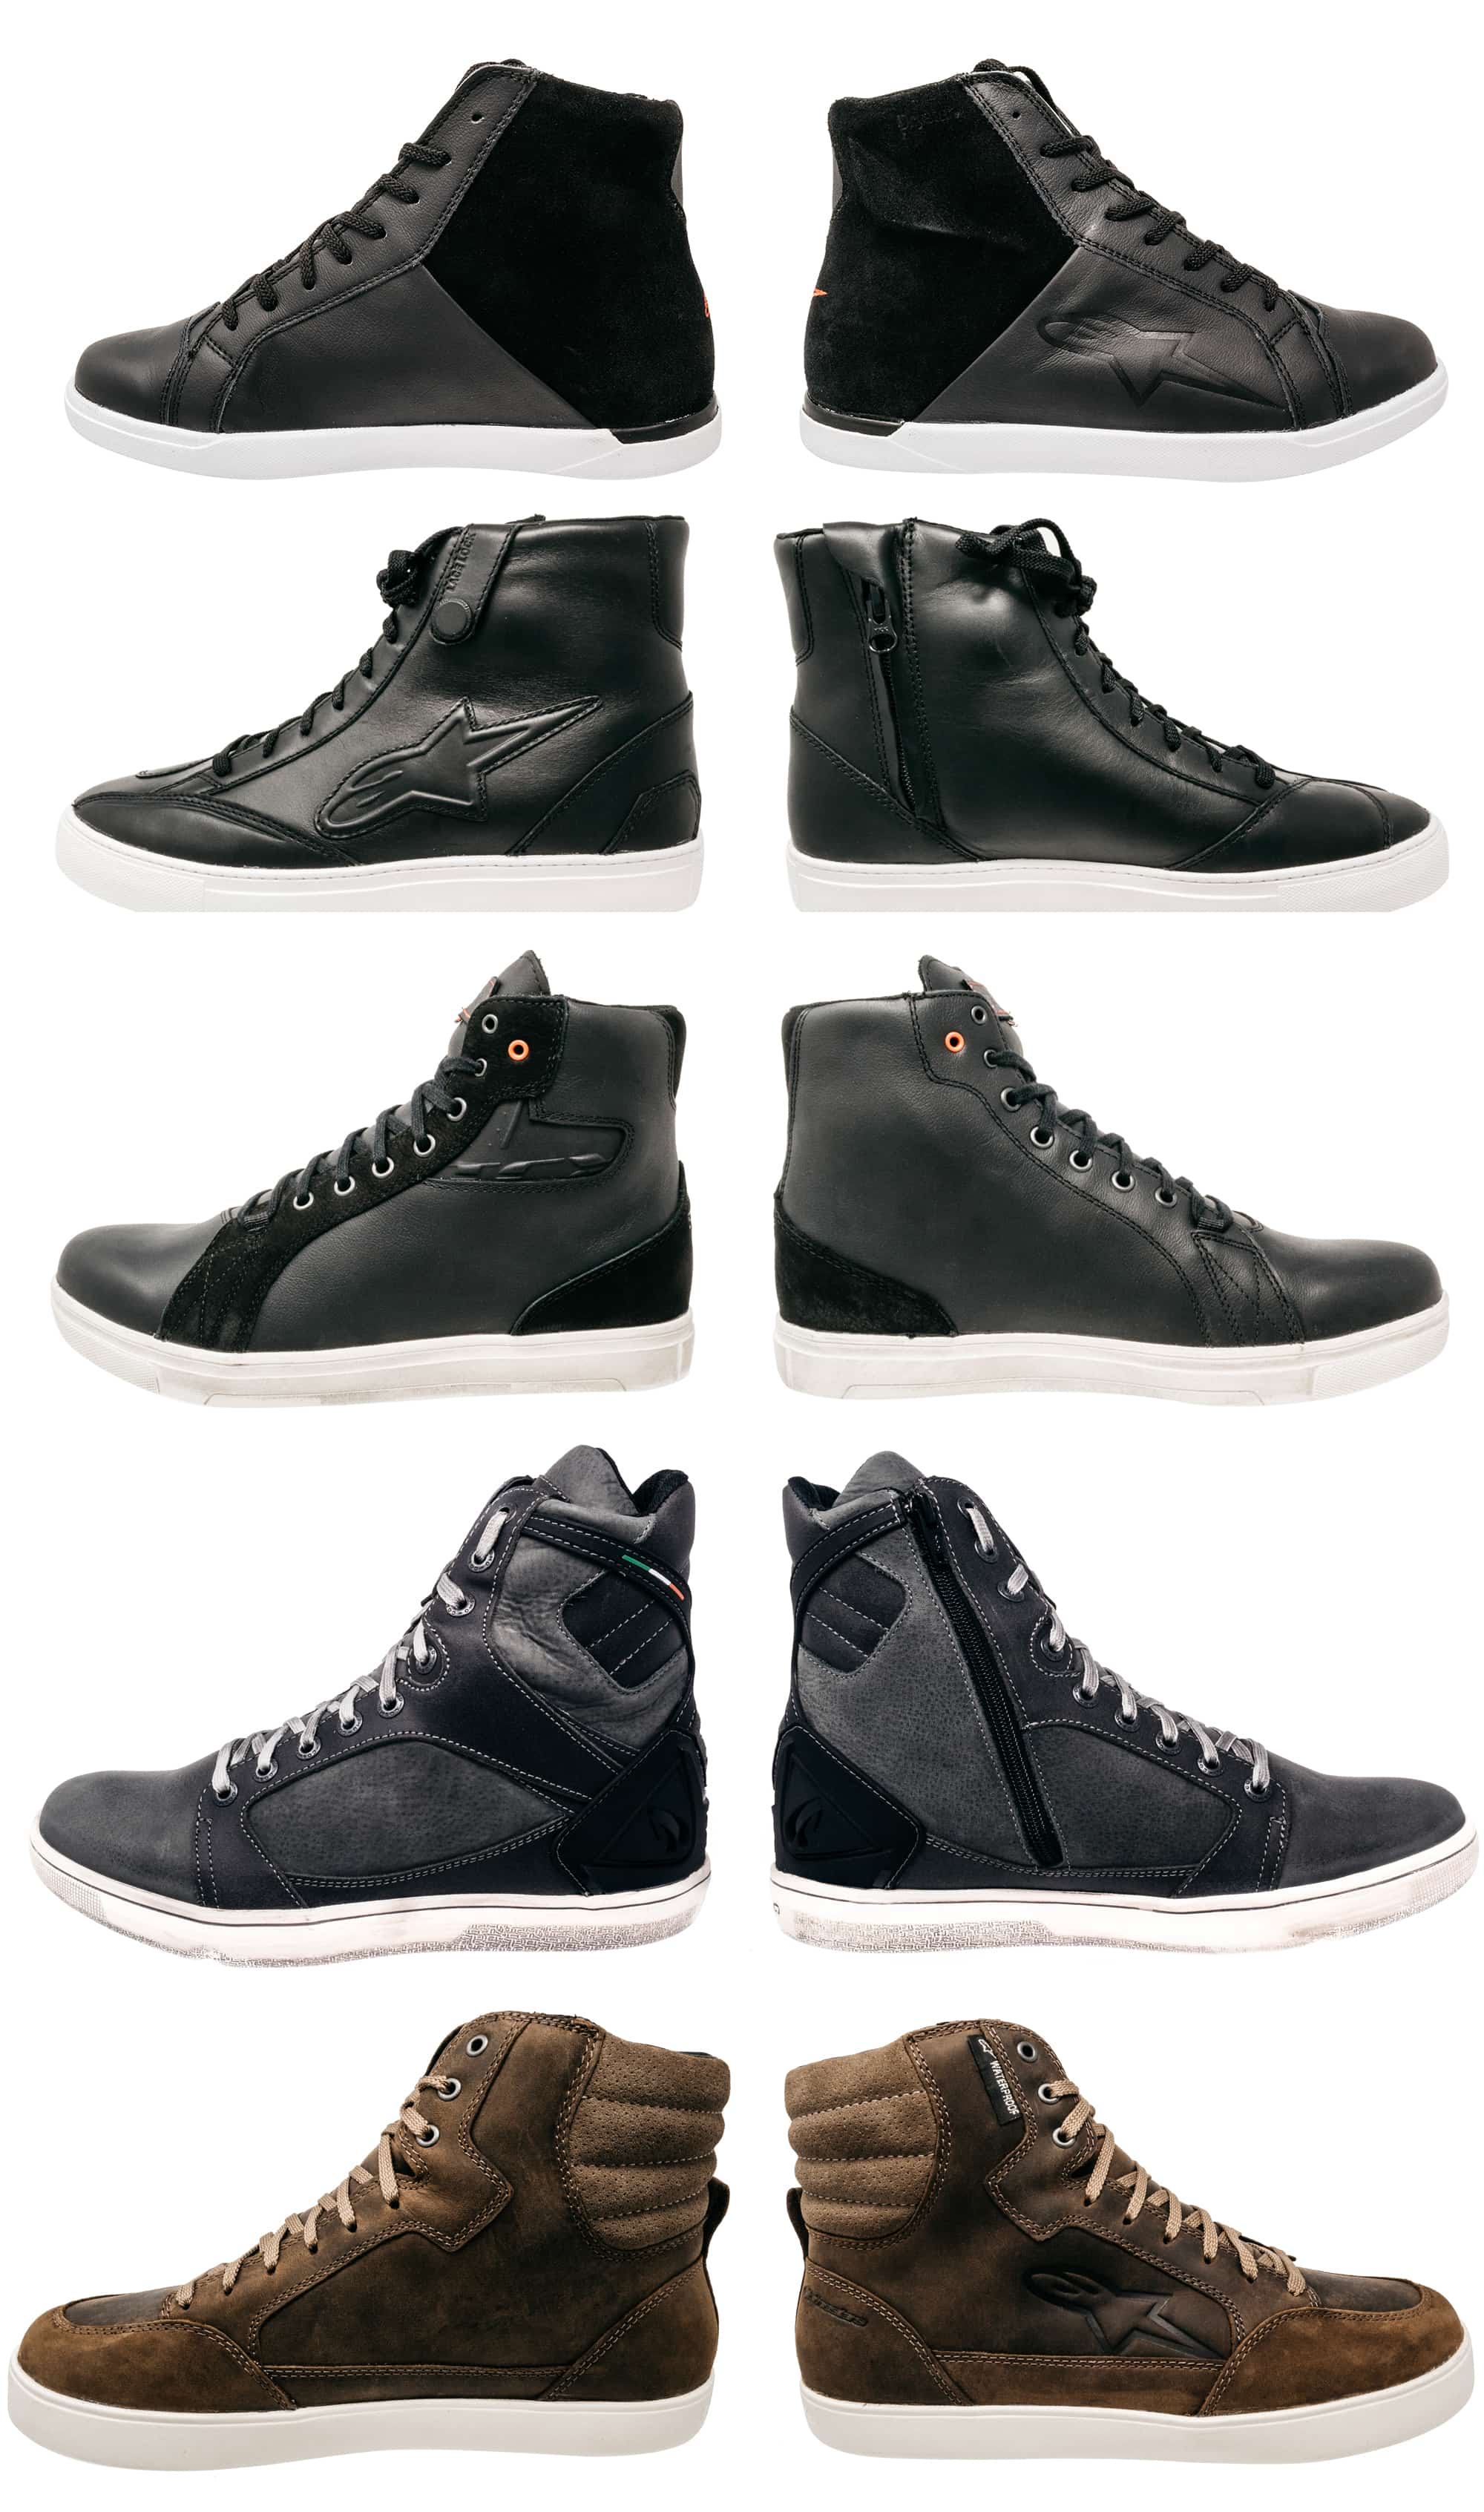 Converse type casual motorcycle boots